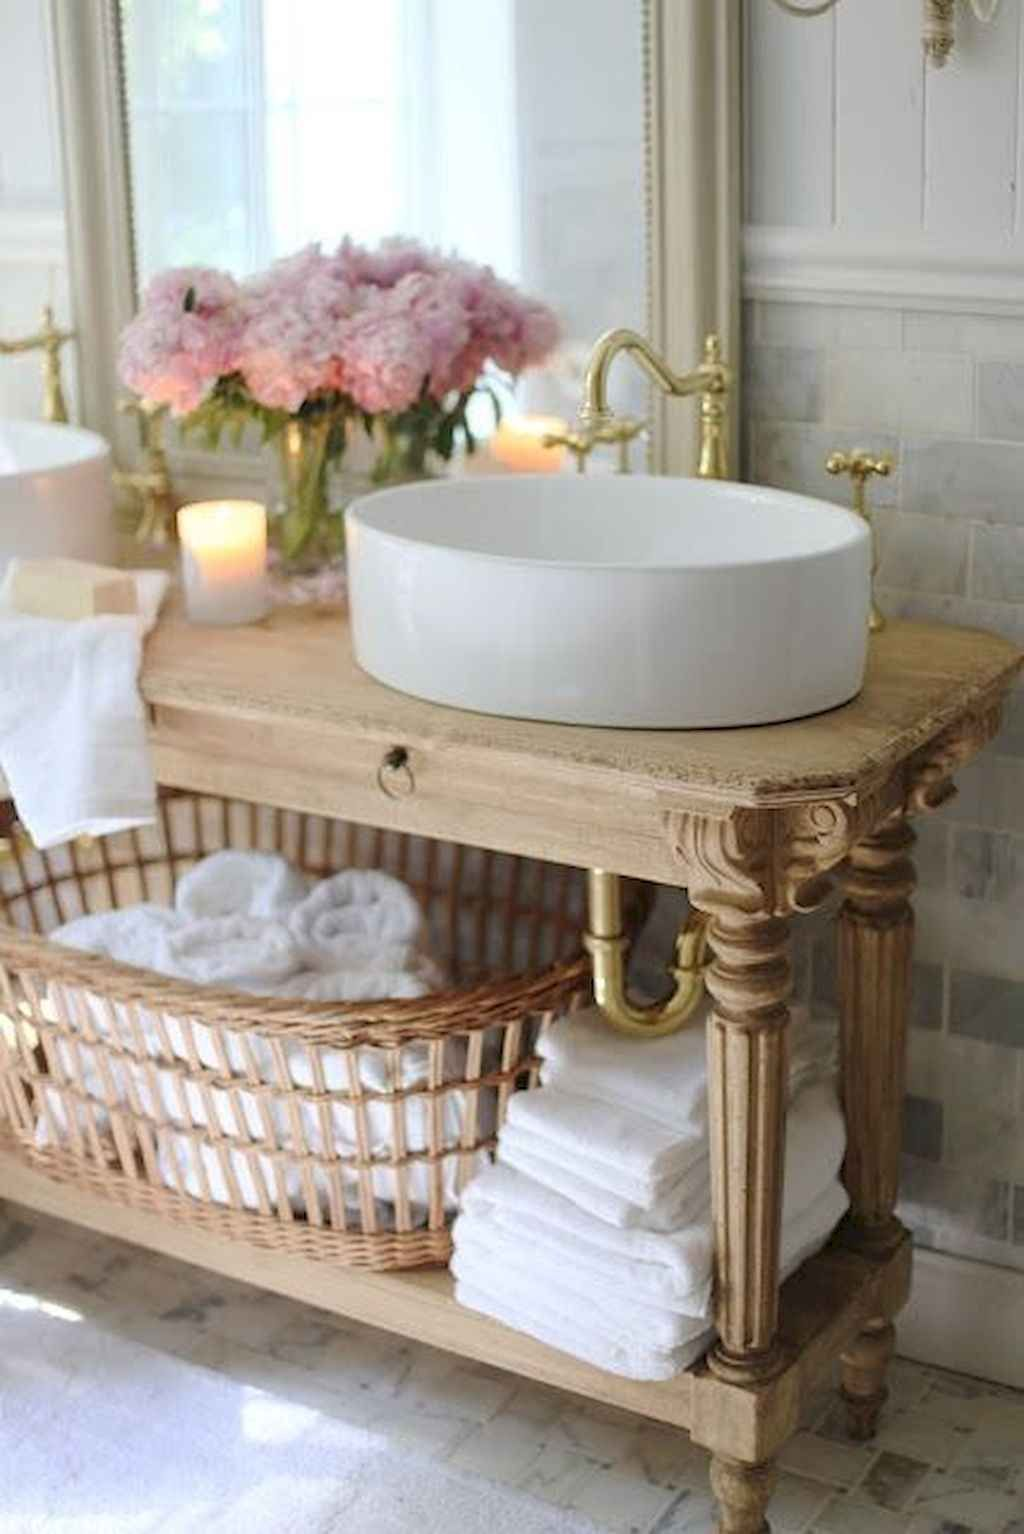 55 French Country Style Bathroom Design Ideas Redecorationroom Cool 55 French Cou In 2020 Country Bathroom Designs French Cottage Bathroom French Country Bathroom